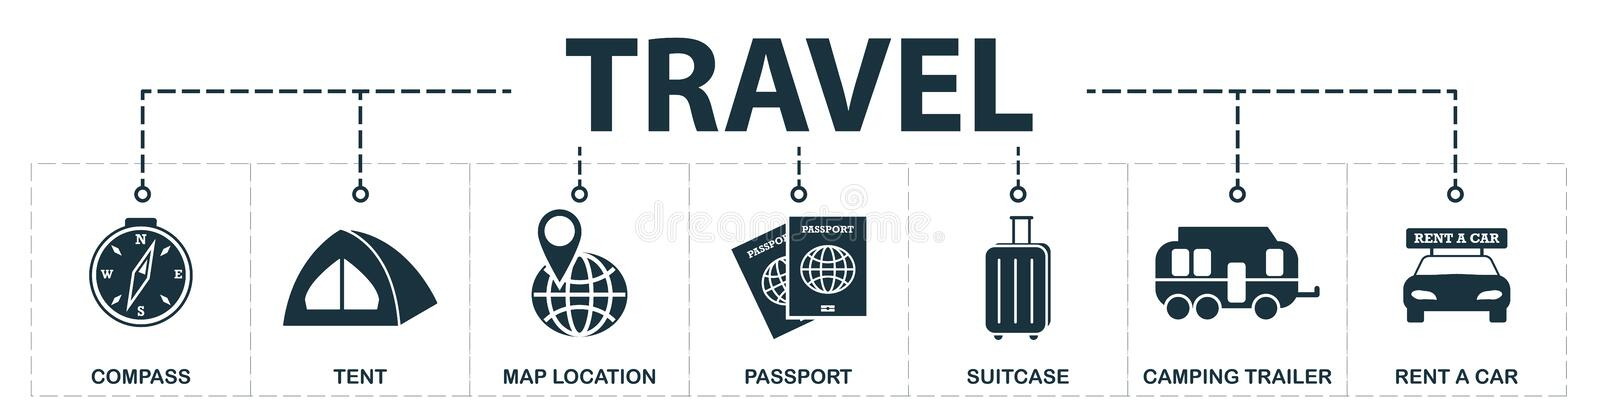 Travel set icons collection. Includes simple elements such as Compass, Tent, Map Location, Passport, Suitcase, Camping Trailer and. Rent A Car premium icons vector illustration